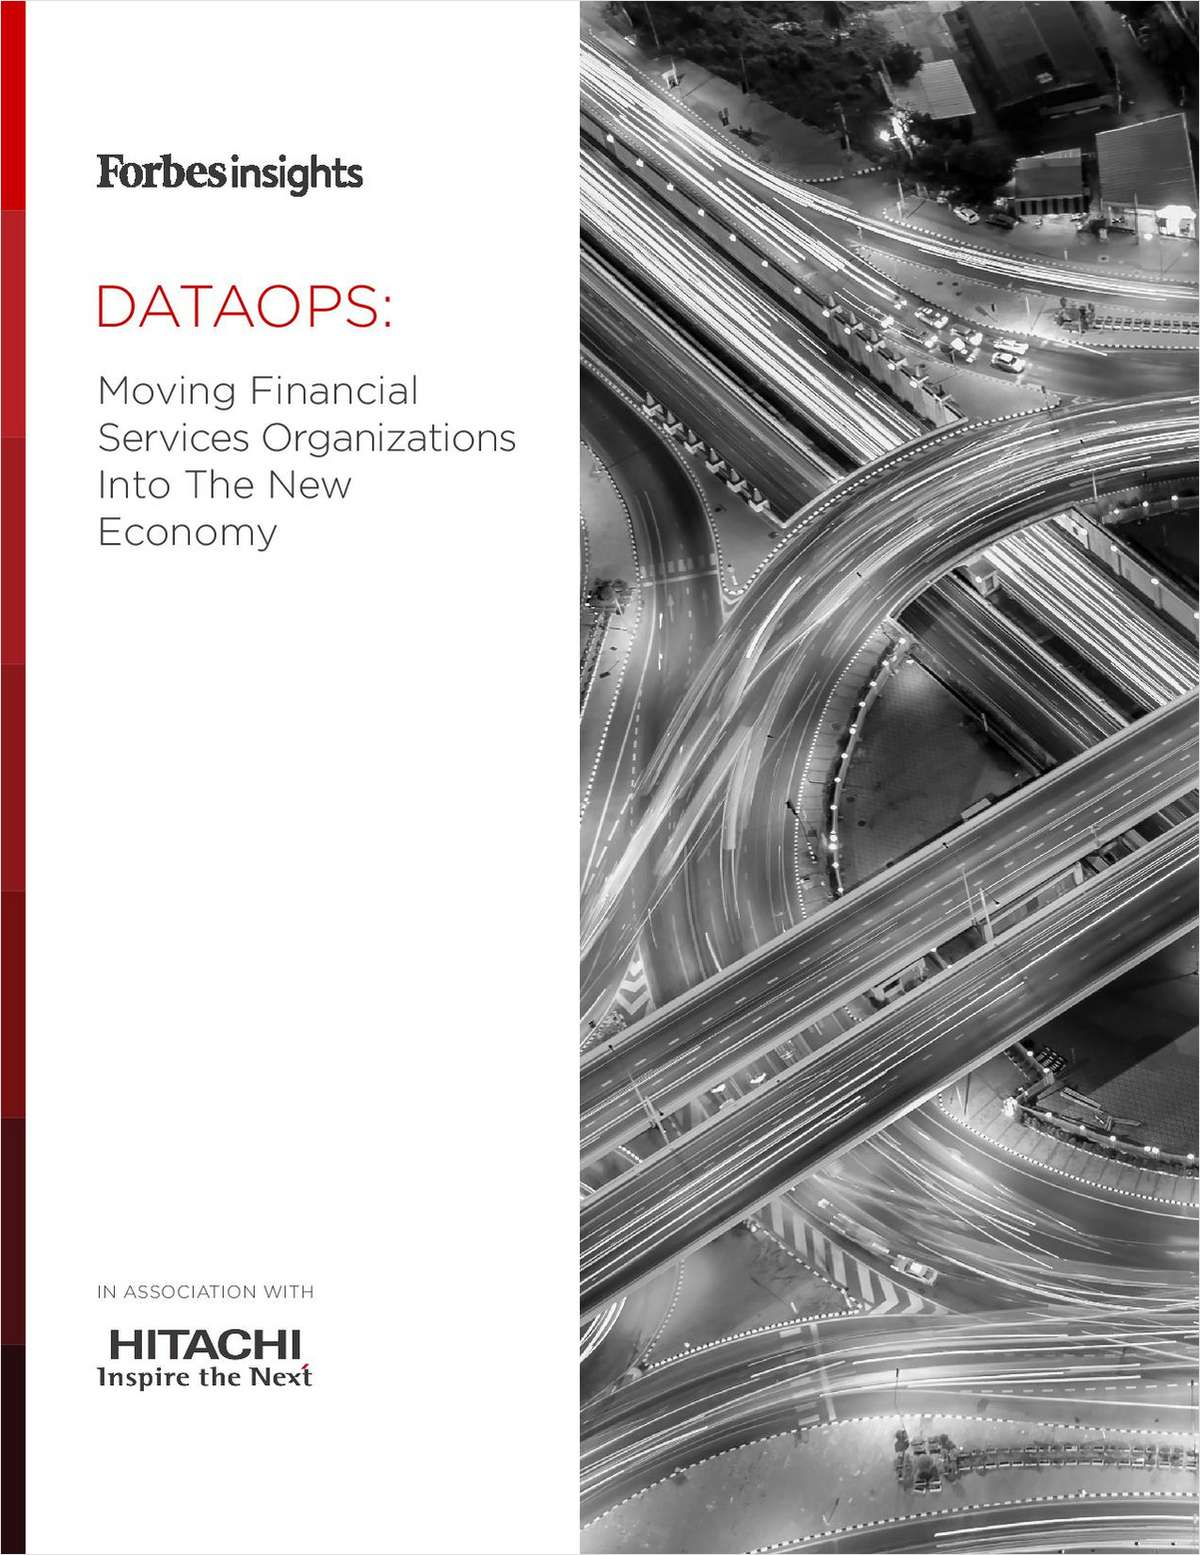 DataOps: Moving Financial Services Organizations Into The New Economy